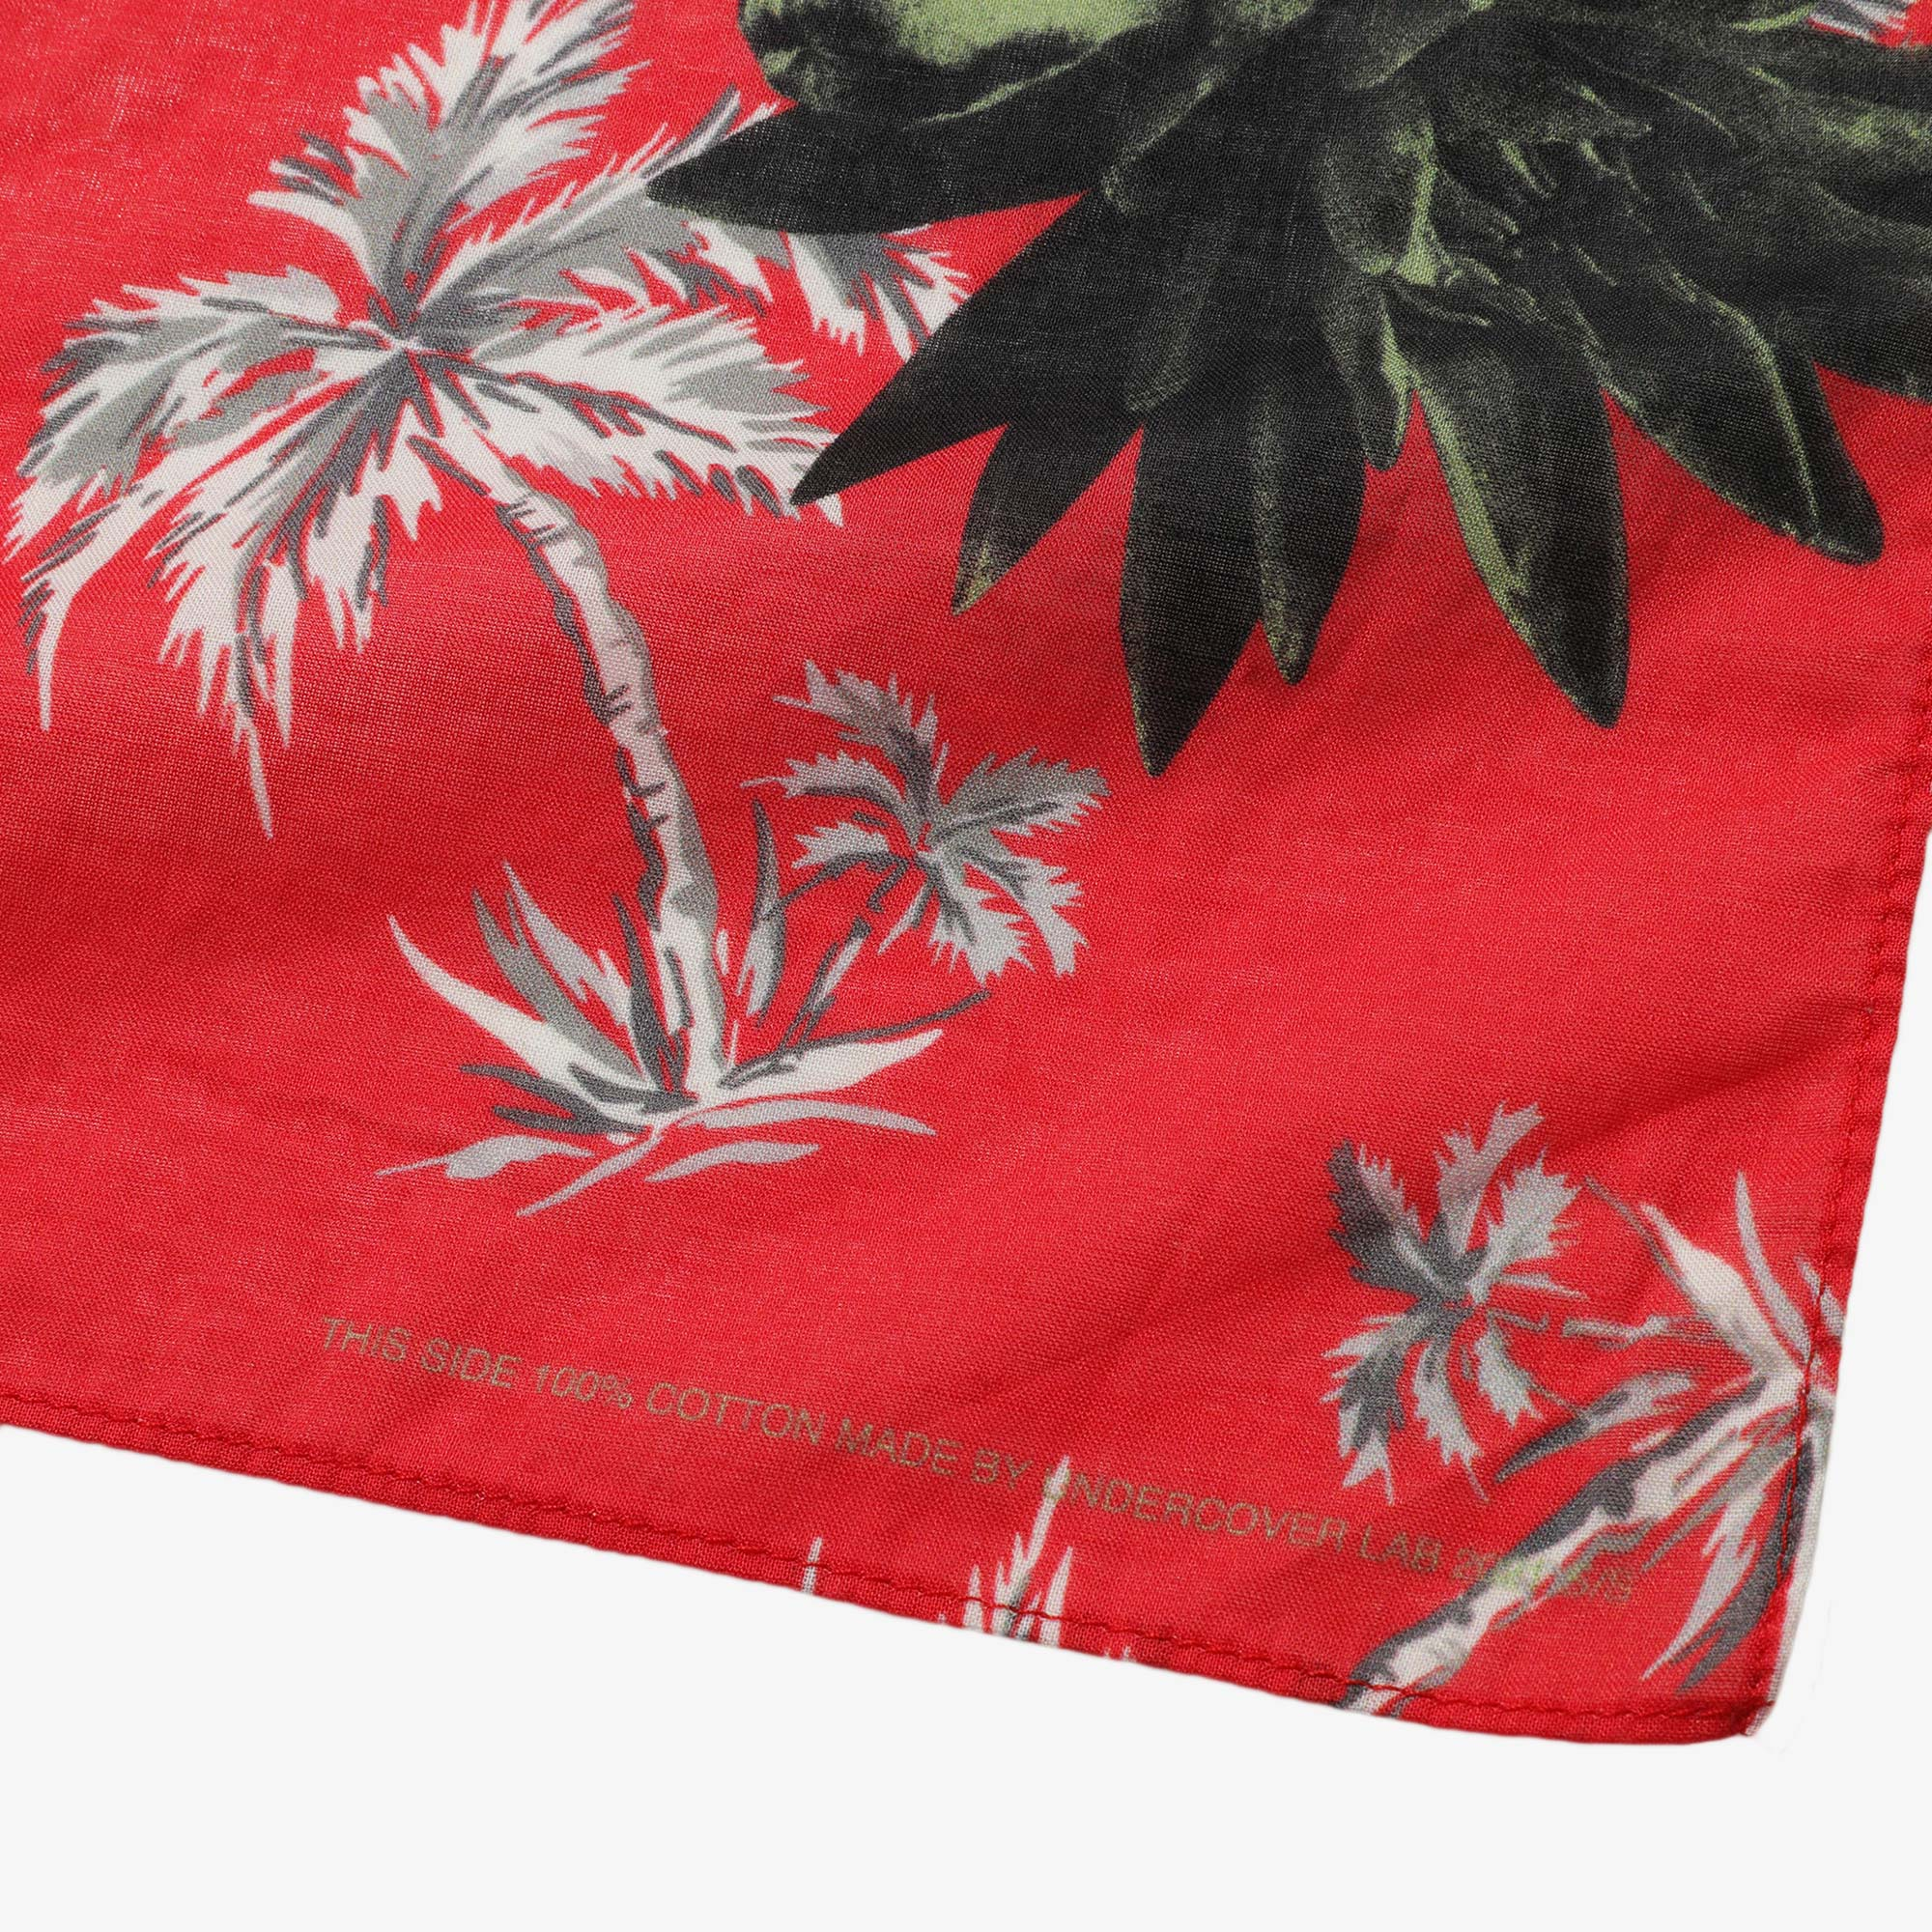 Undercover Faces Pocket Square UC1A4M01-2 - Red Base 2